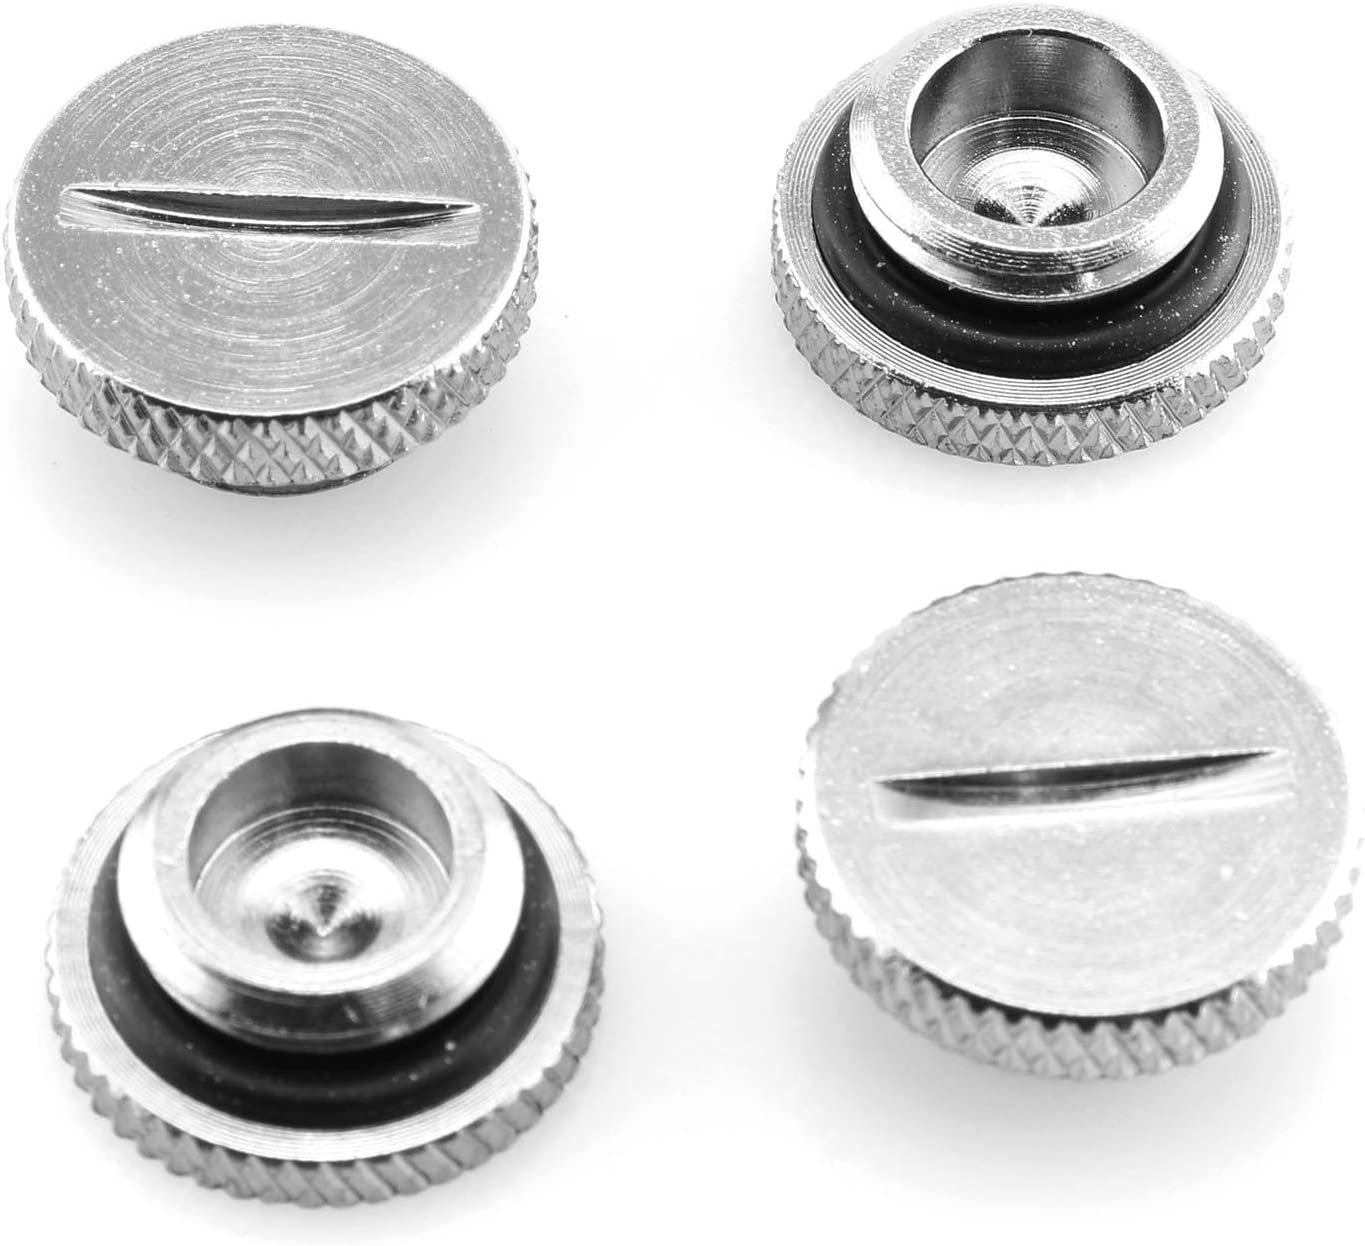 DGZZI G1/4Inch Stop Plug 4PCS G1/4 Thread Silver Plug with Sealing Ring for Computer Water Cool System